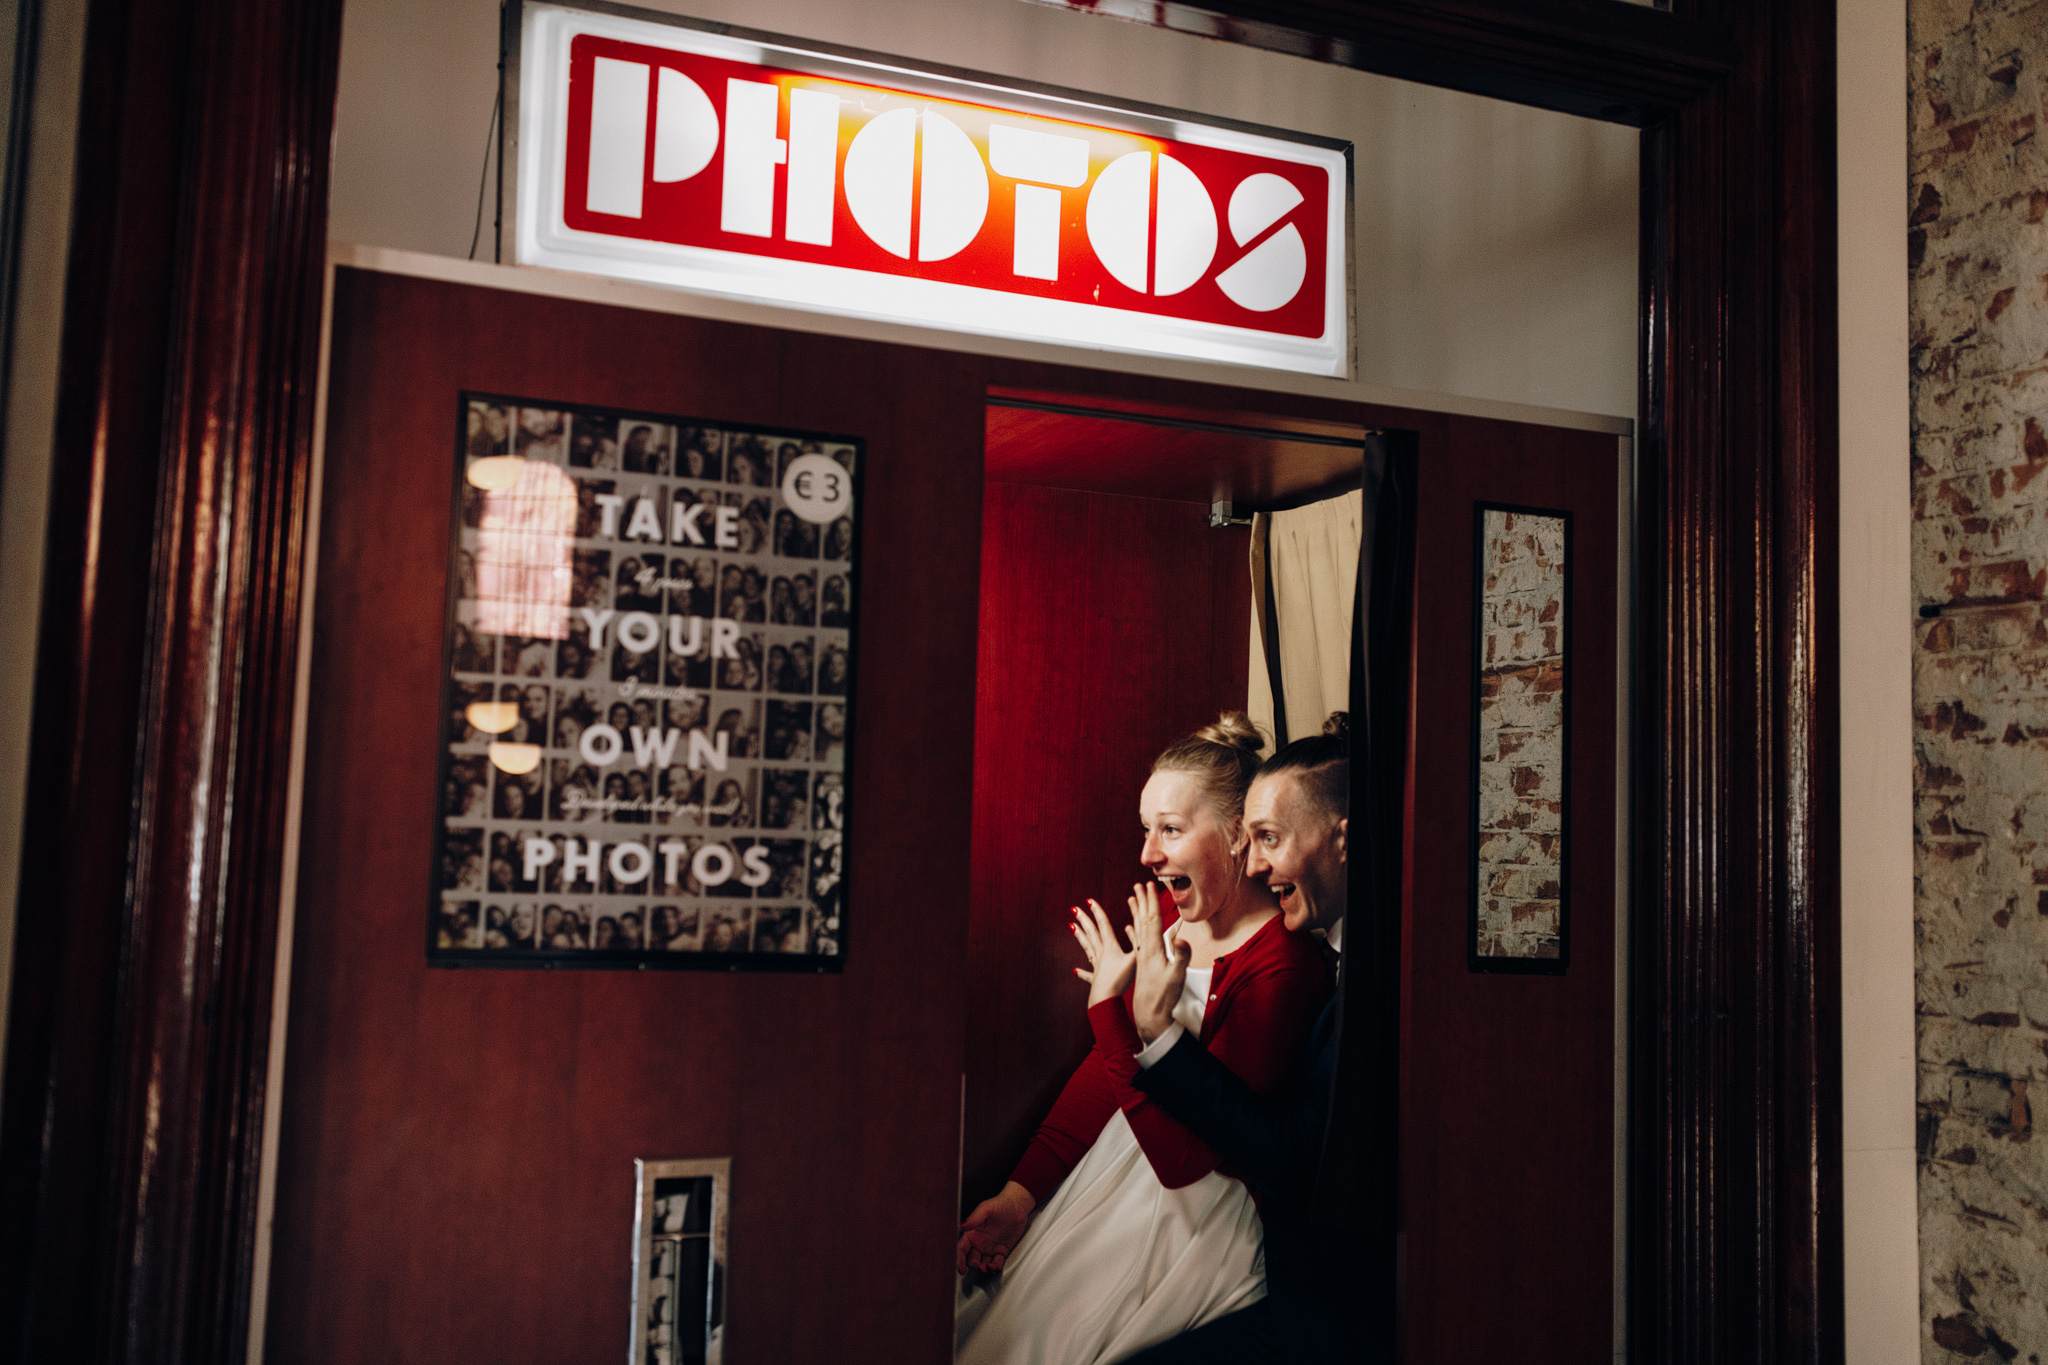 Elopement couple in photo booth at Hotel Hoxton Amsterdam